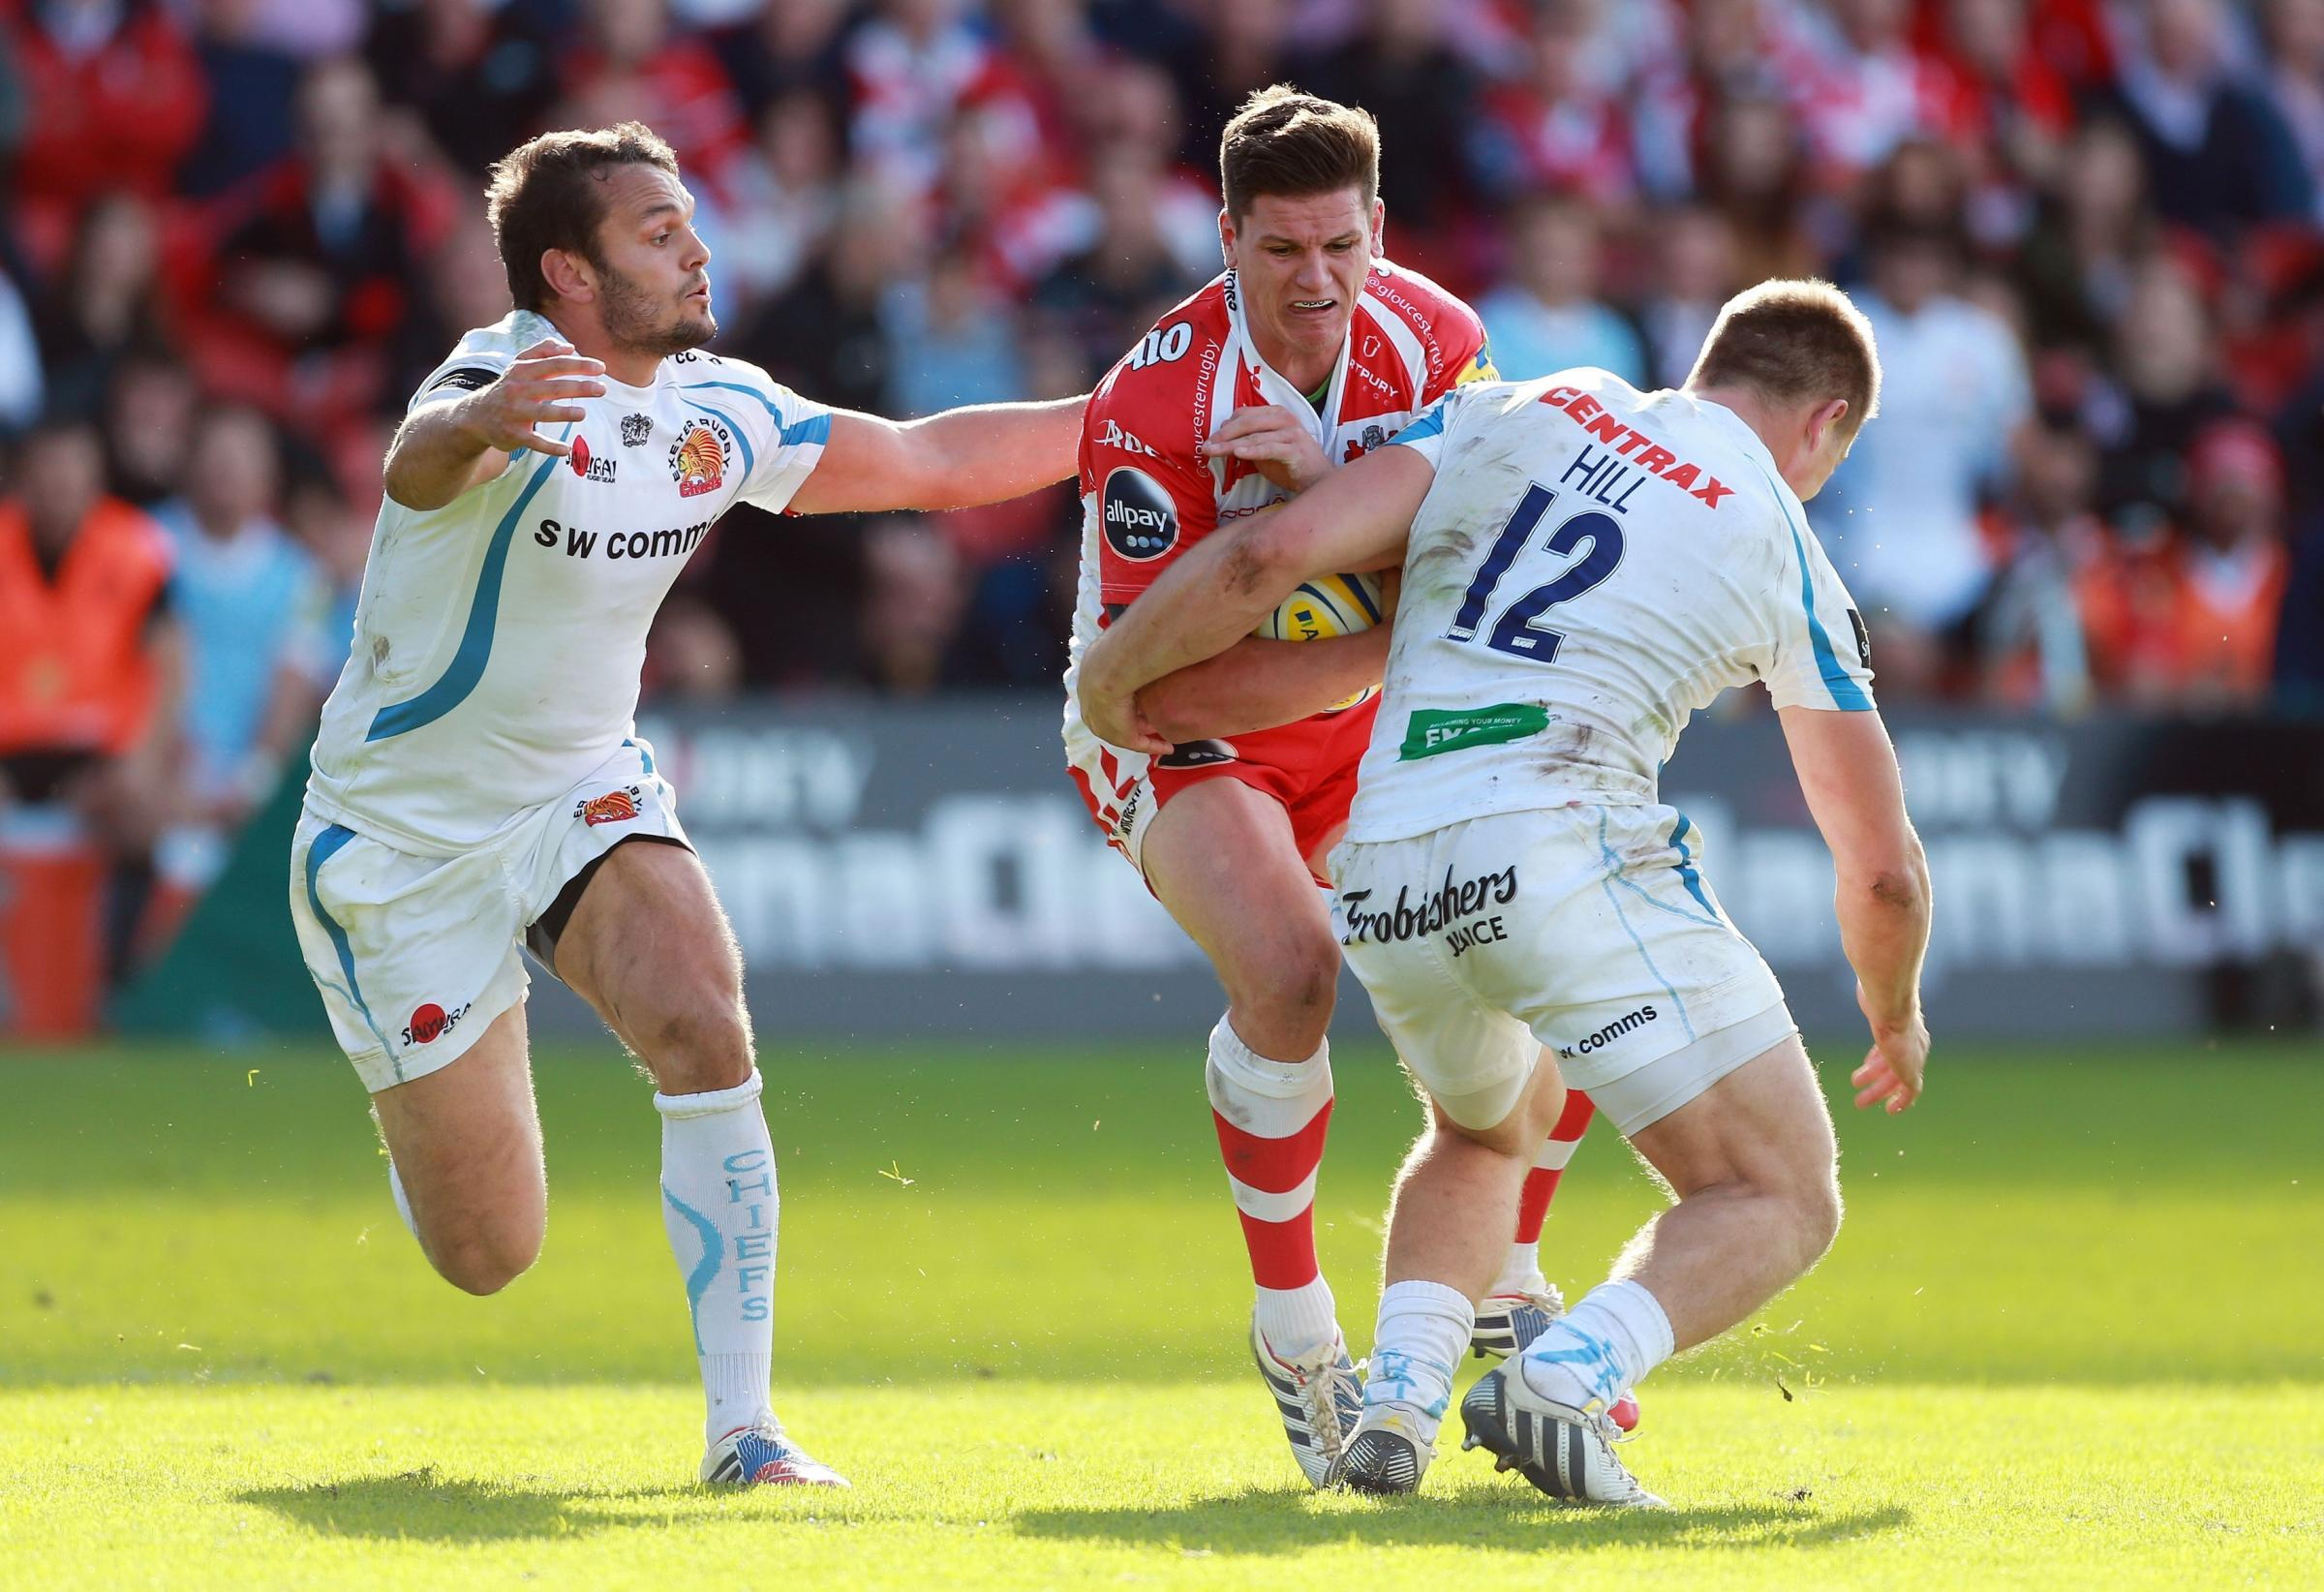 Gloucester's Freddie Burns is tackled by Exeter's Sam Hill and Phil Dollman during the Aviva Premiership match at Kingsholm Stadium, Gloucester. PRESS ASSOCIATION Photo. Picture date: Sunday October 6, 2013. Photo credit should read: David Davies/